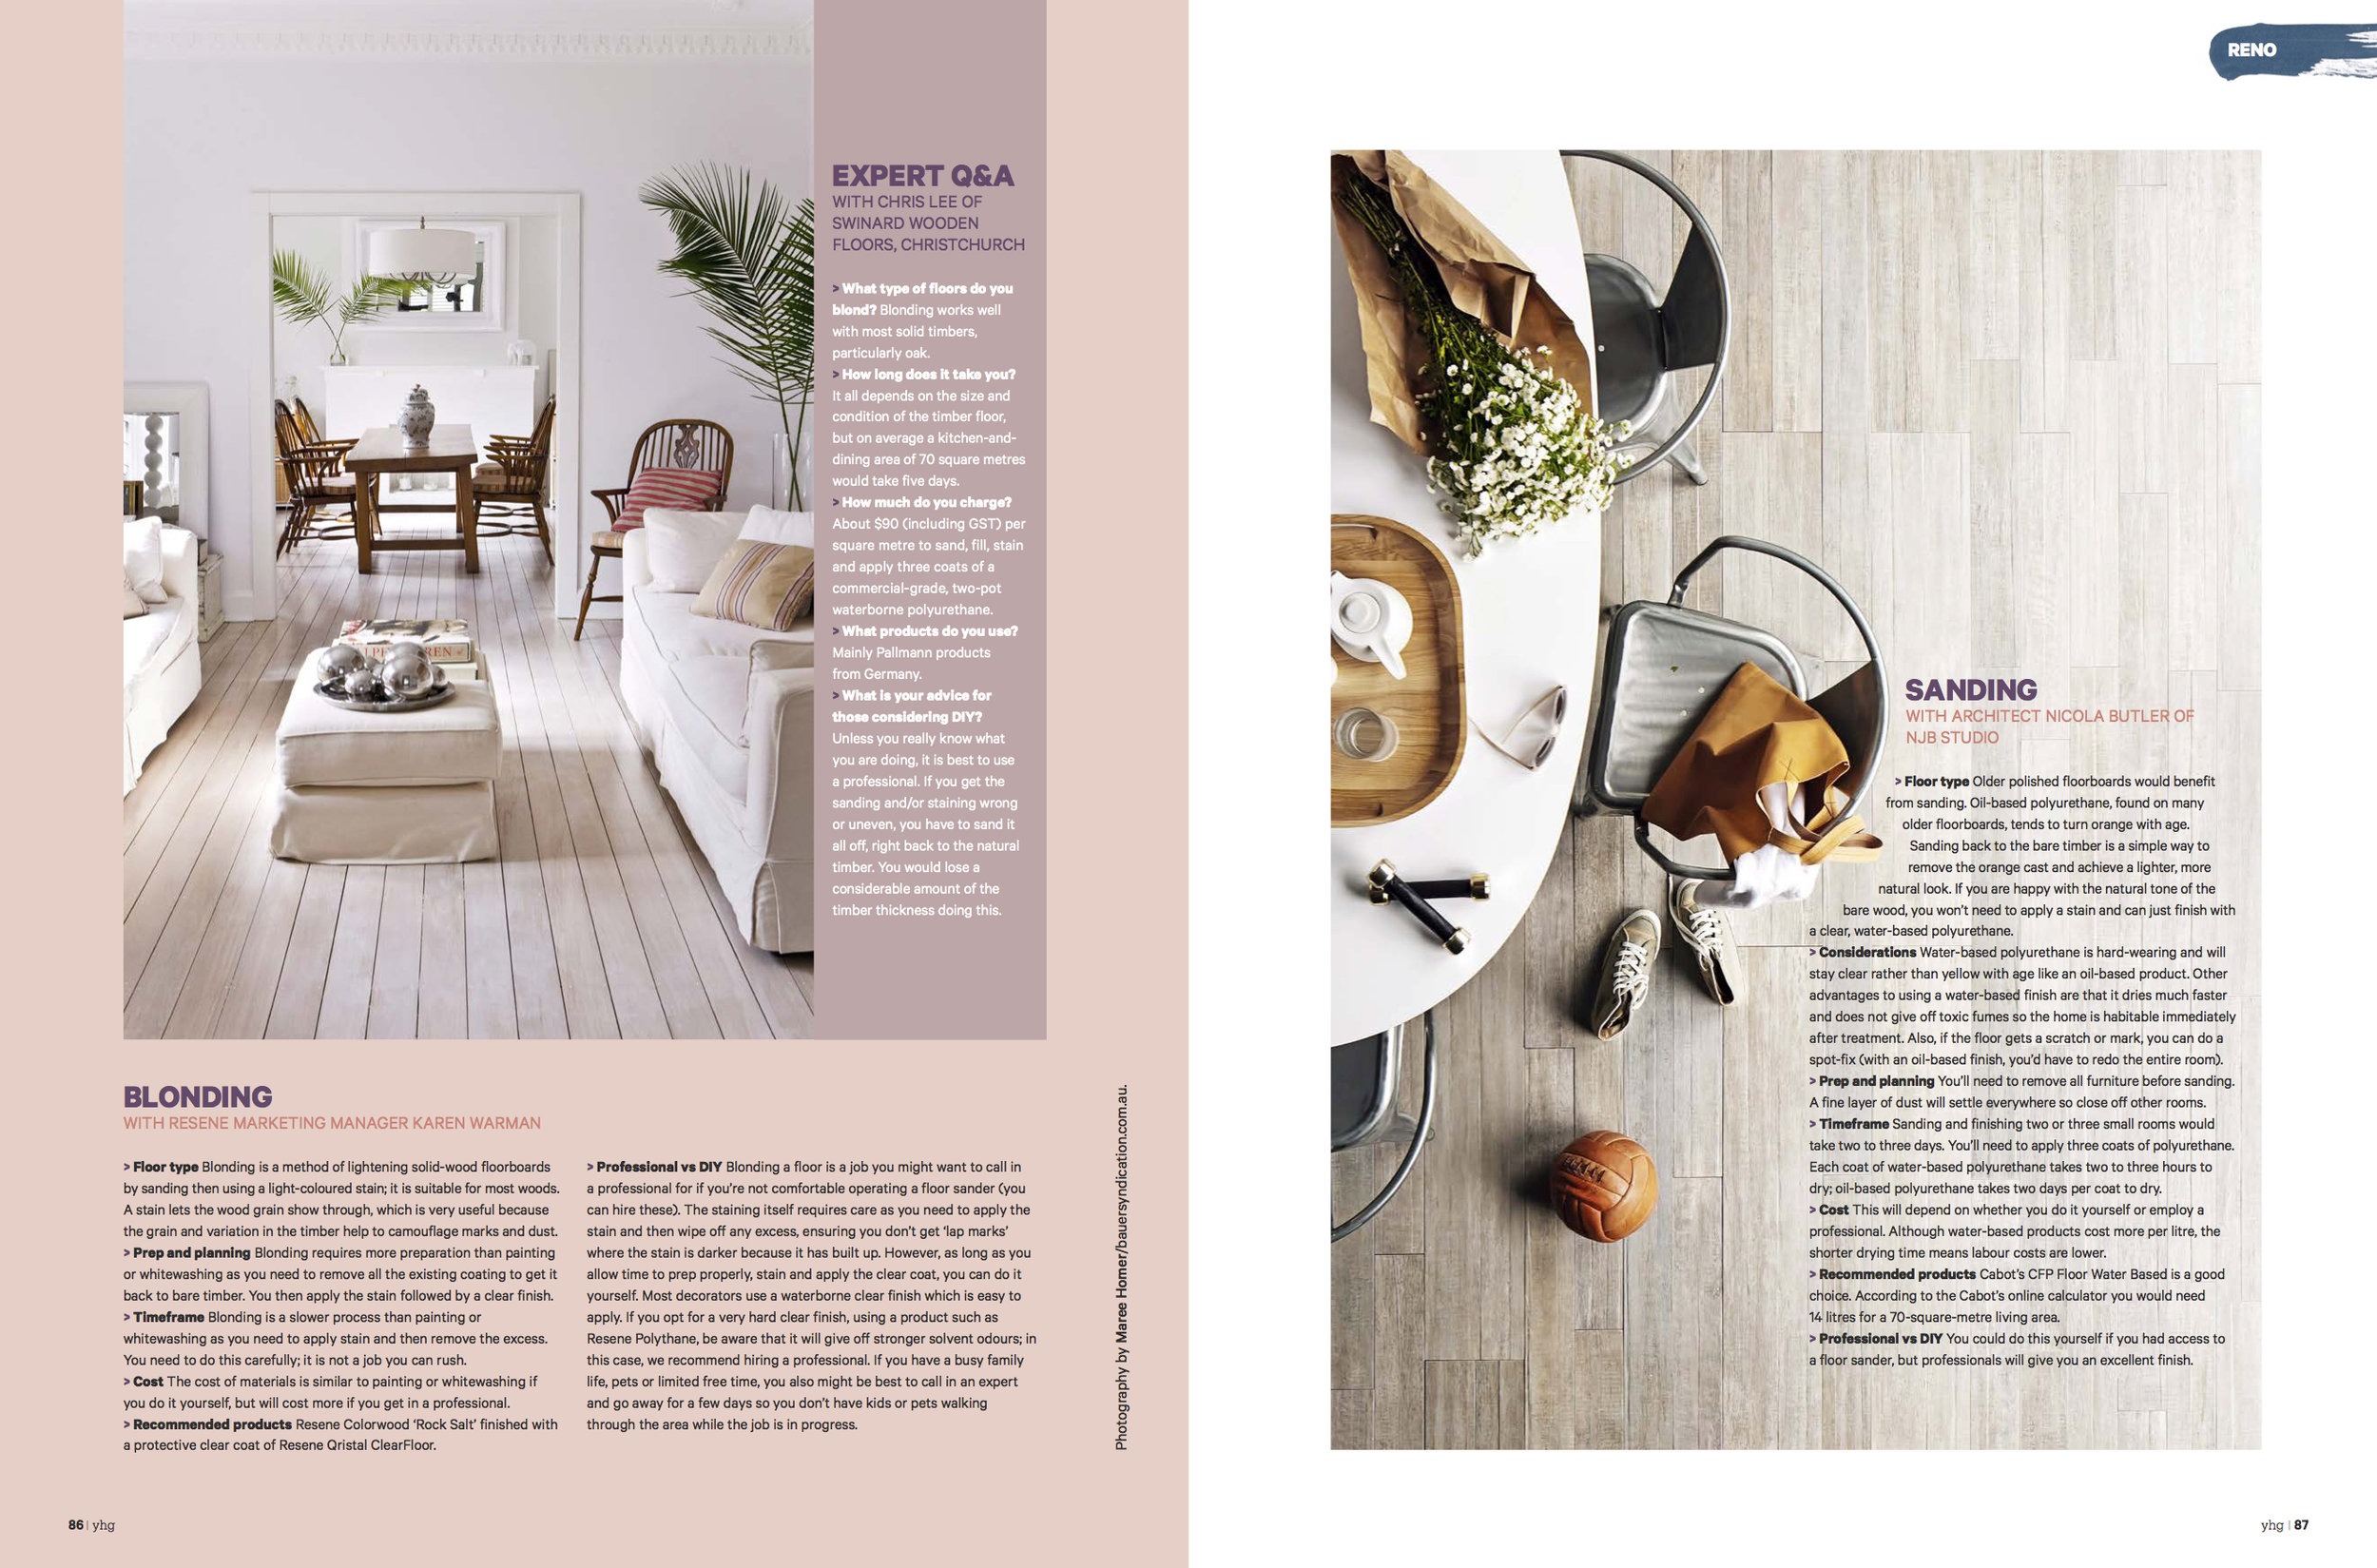 Layout from Your Home & Garden NZ - get the current issue to read the full article